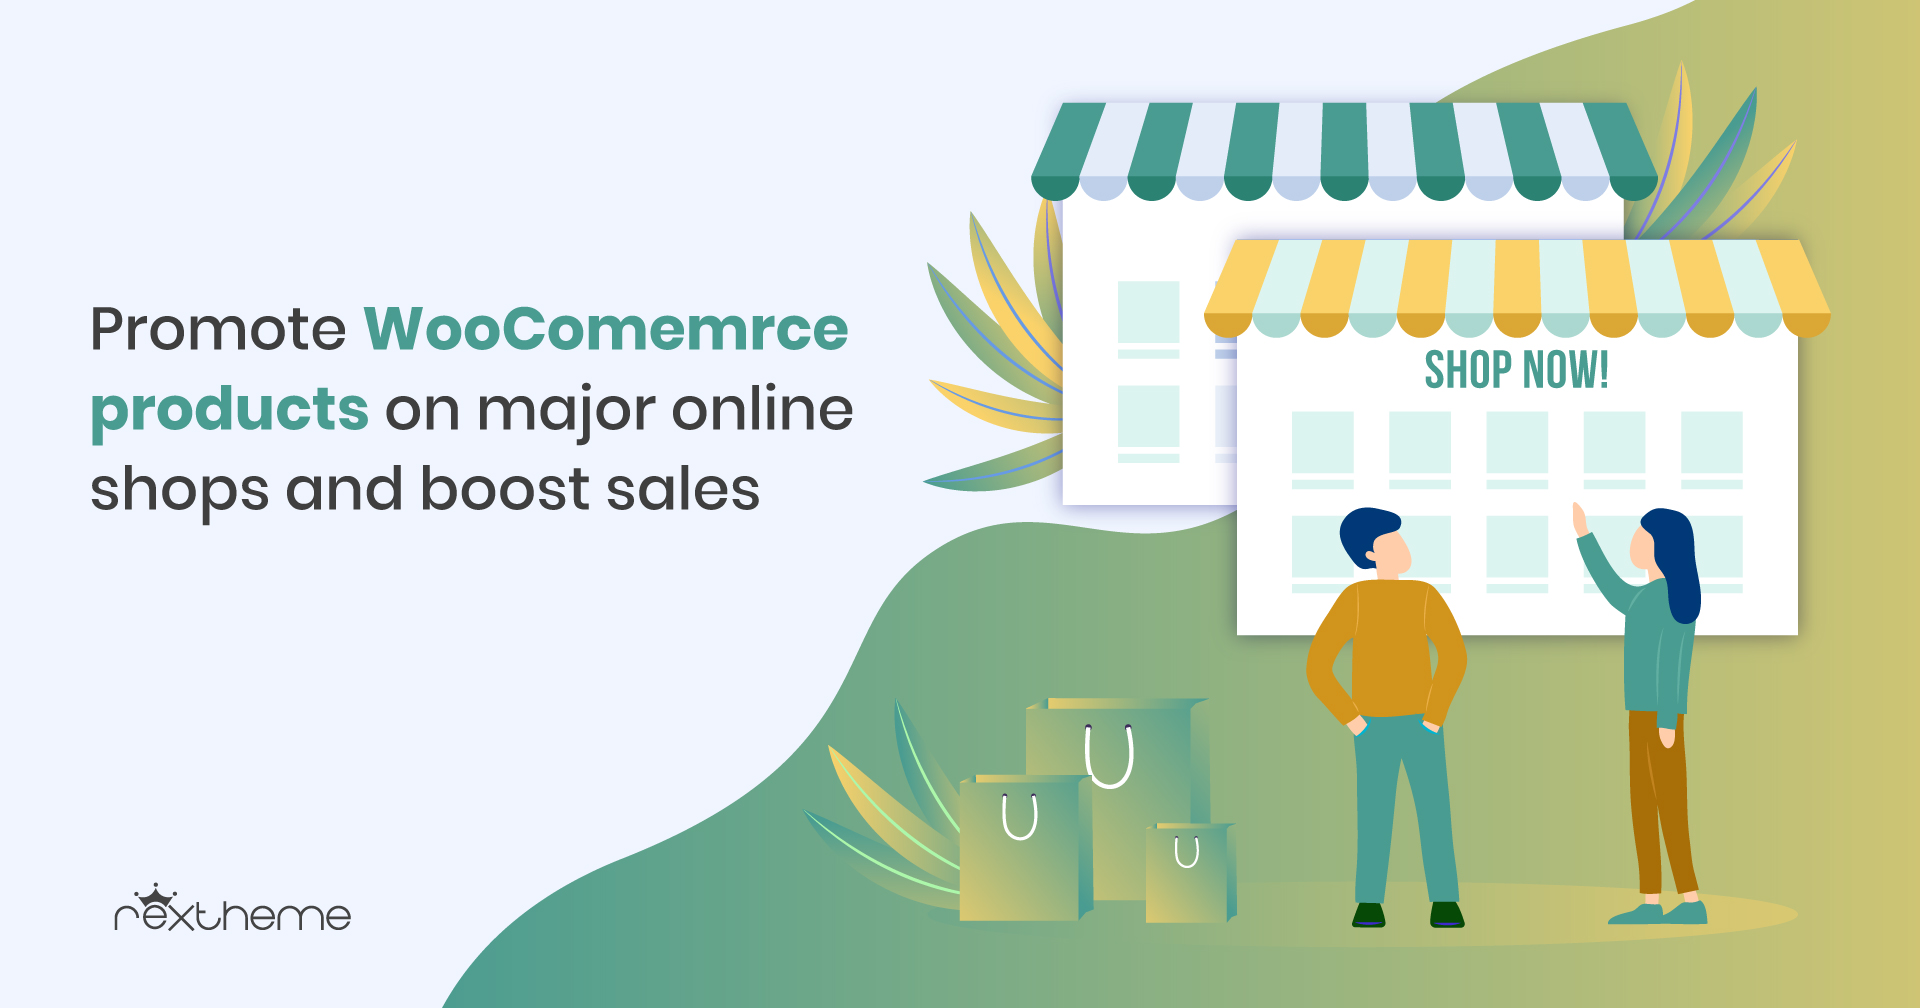 Best Online Marketplace To Promote WooCommerce Products [2020]